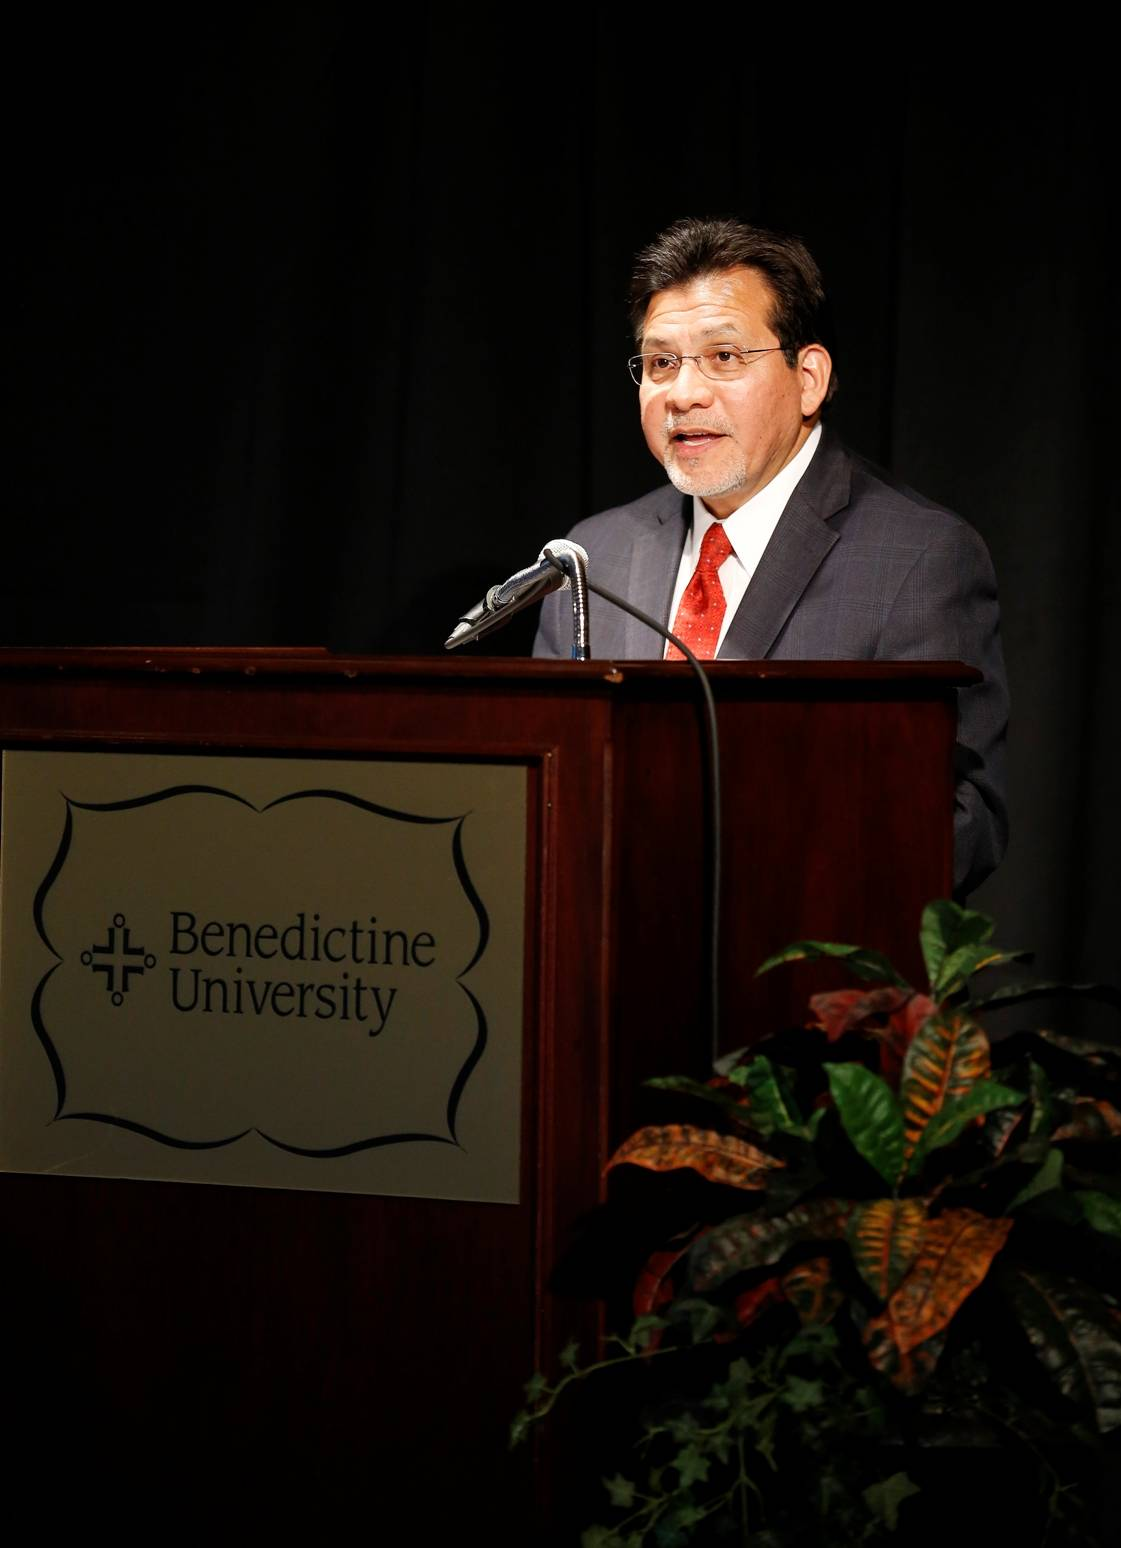 Former U.S. Attorney General Alberto Gonzales' speech at Benedictine University draws on experience protecting reputation of president, White House.Courtesy of Benedictine University